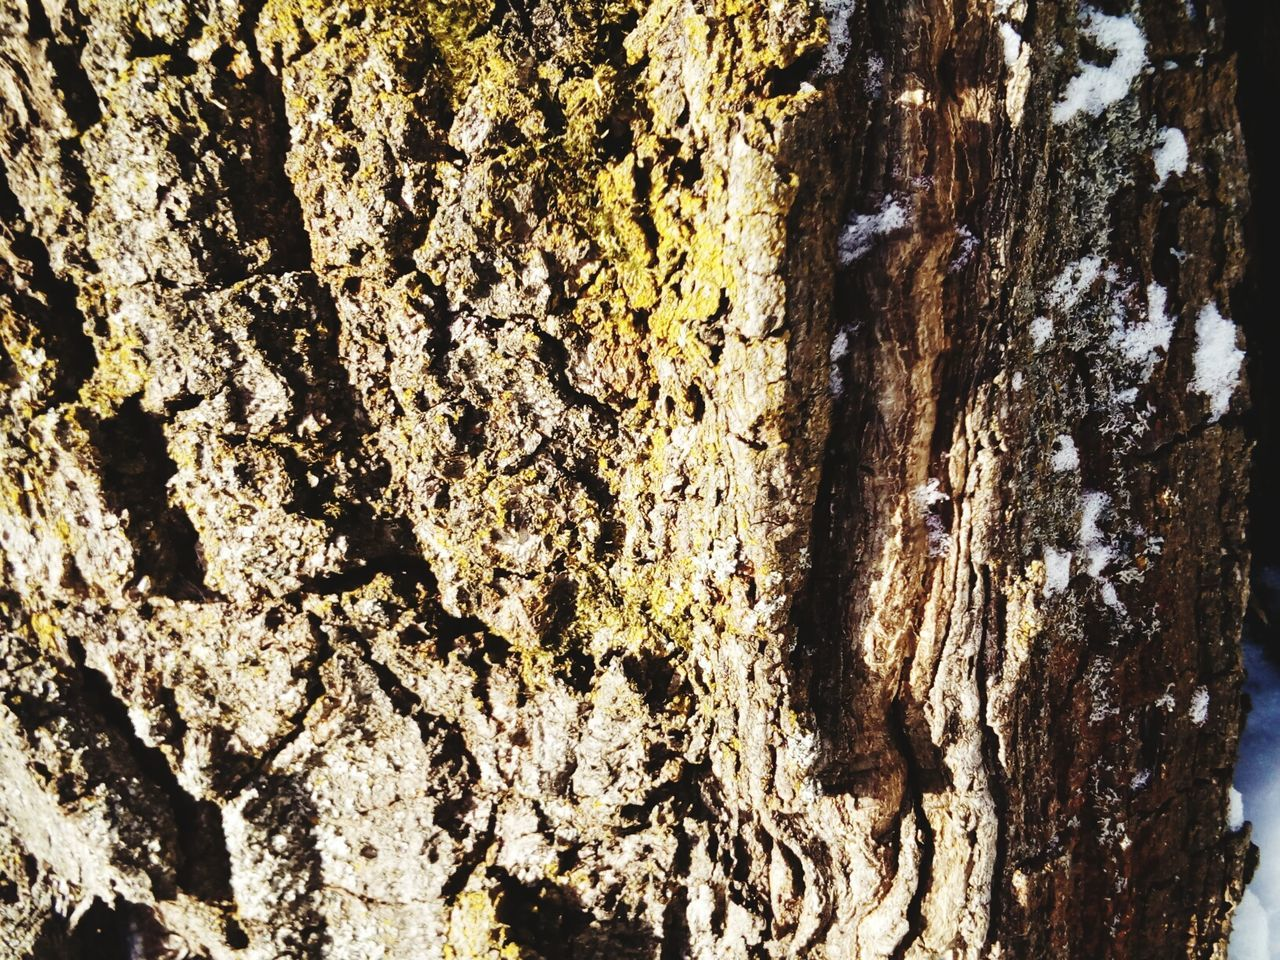 Full Frame Backgrounds No People Close-up Sunlight Nature Textured  Outdoors Day Beauty In Nature Water Silhouette The Great Outdoors - 2016 EyeEm Awards Nature_collection EyeEm Nature Lover Beauty In Nature Nature Branch Tree Trunk Winter Forest Textured  Texrure Textured  Frozen